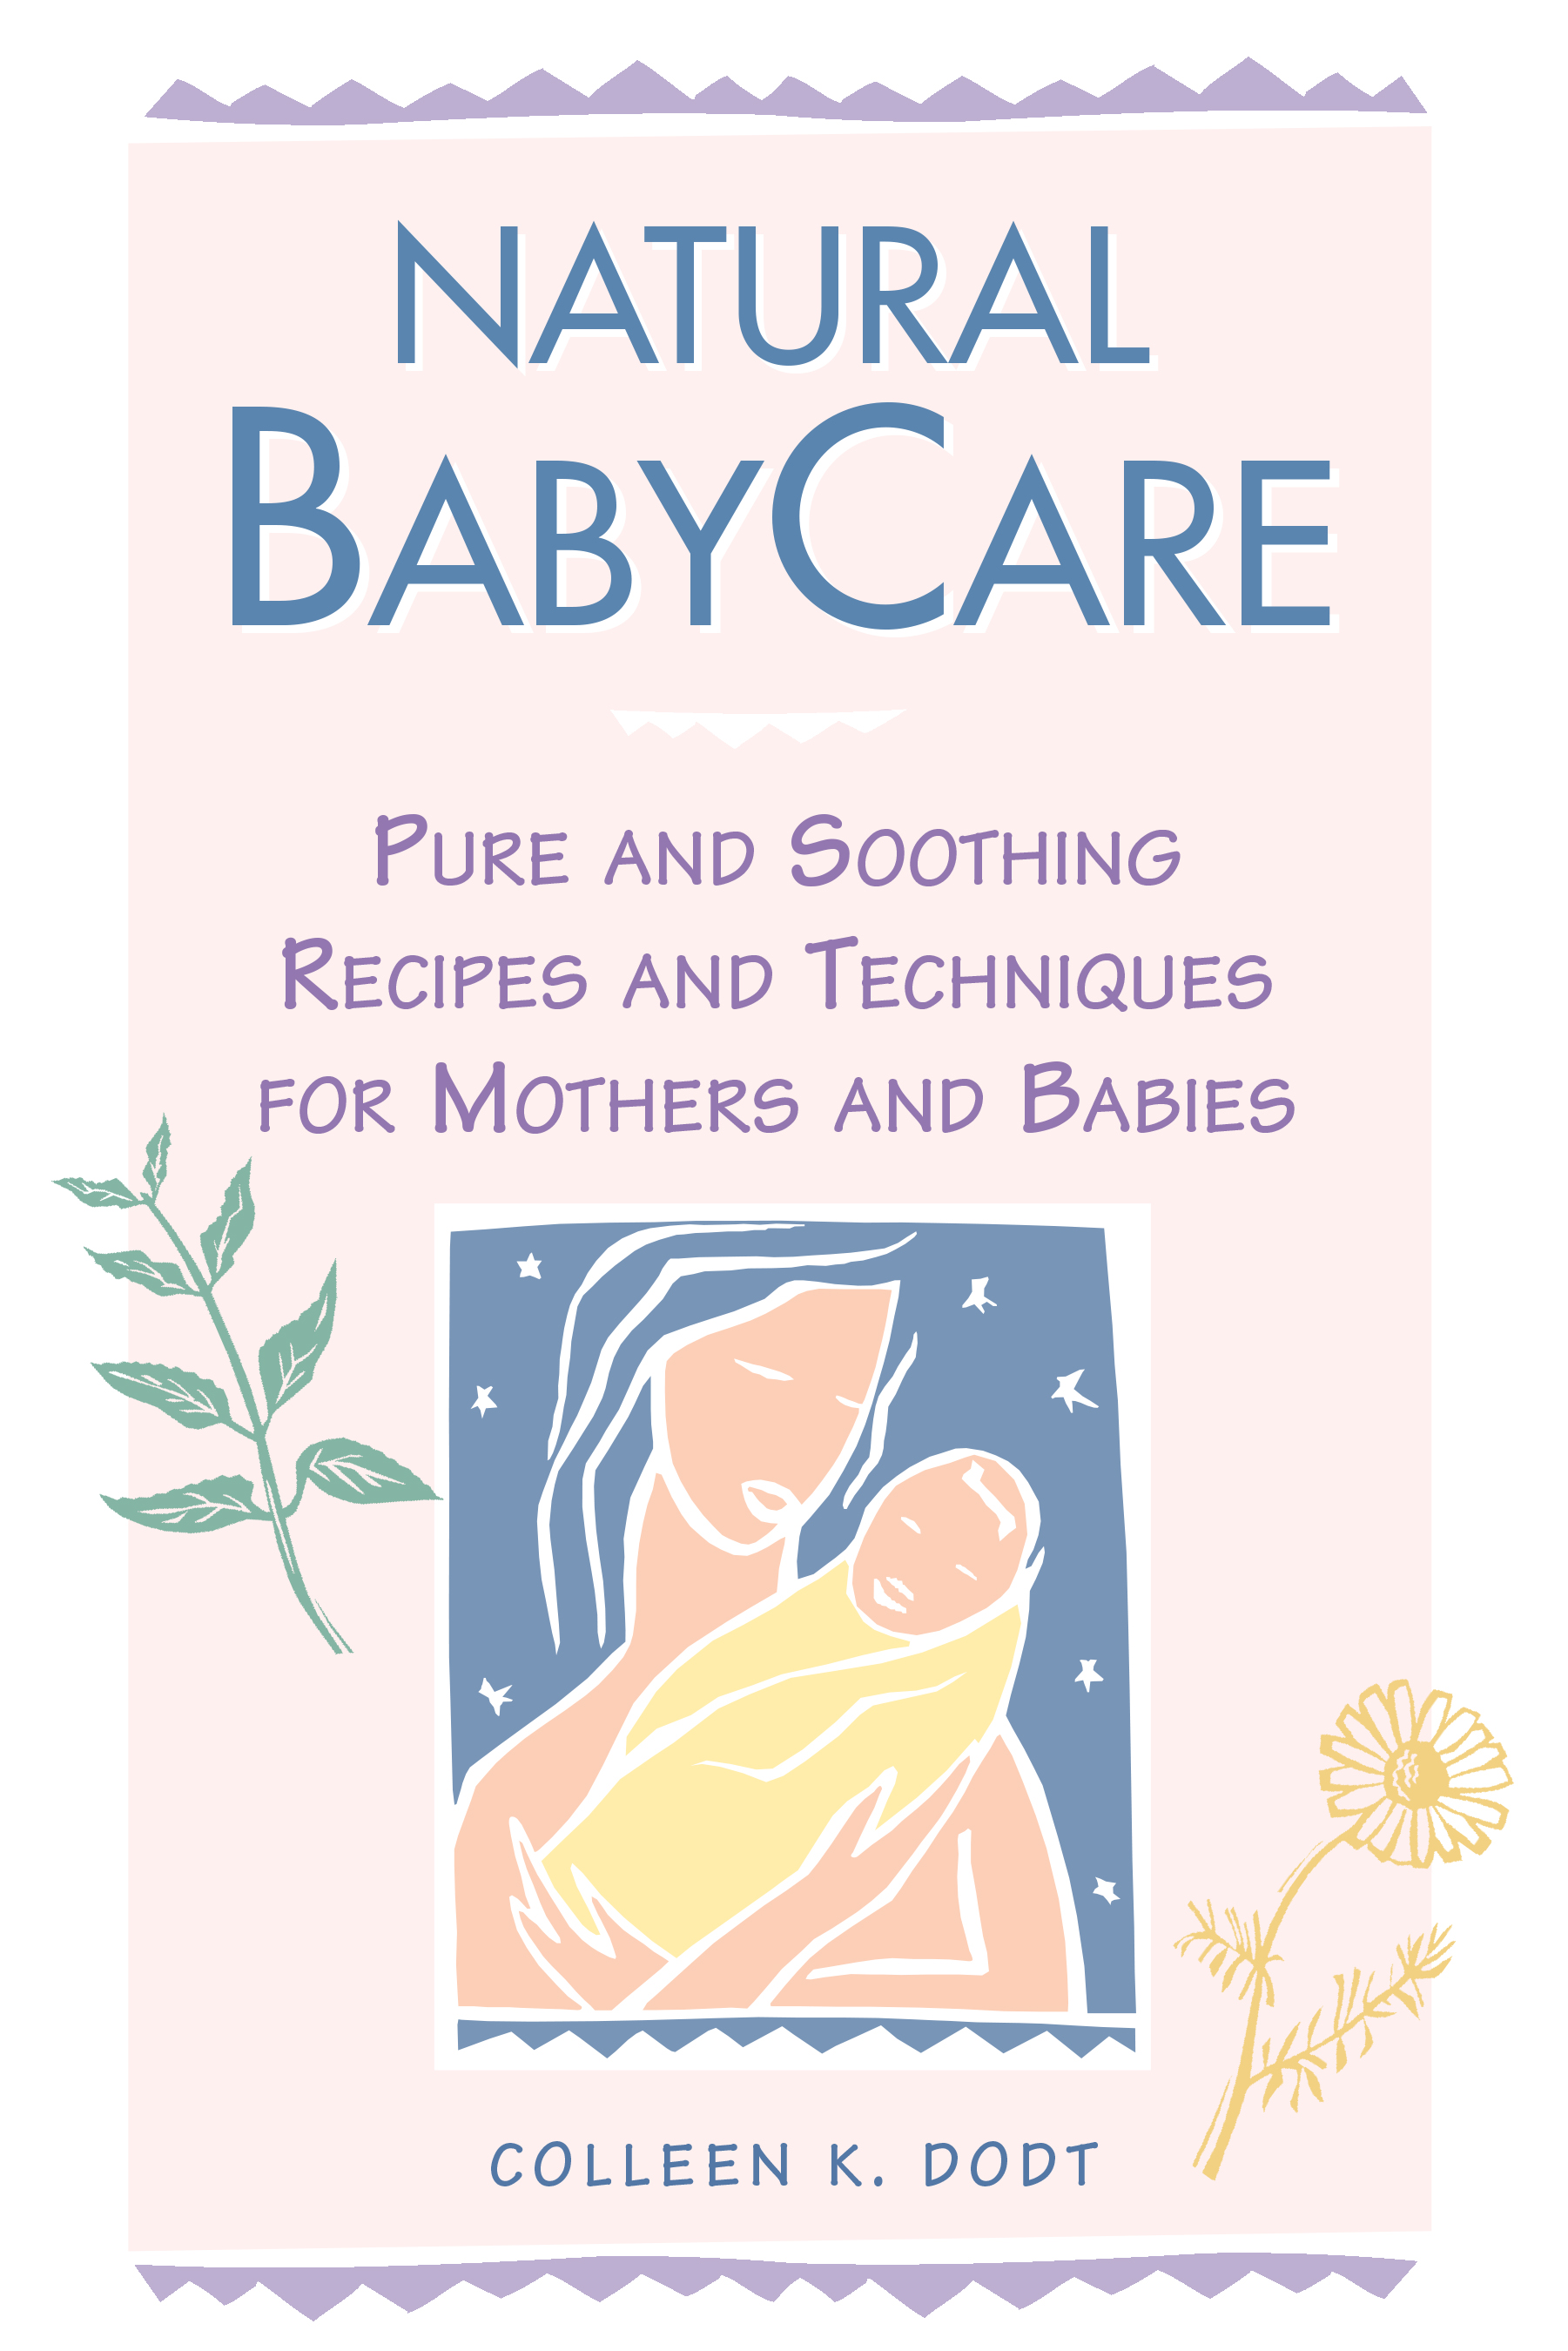 Natural BabyCare Pure and Soothing Recipes and Techniques for Mothers and Babies - Colleen K. Dodt